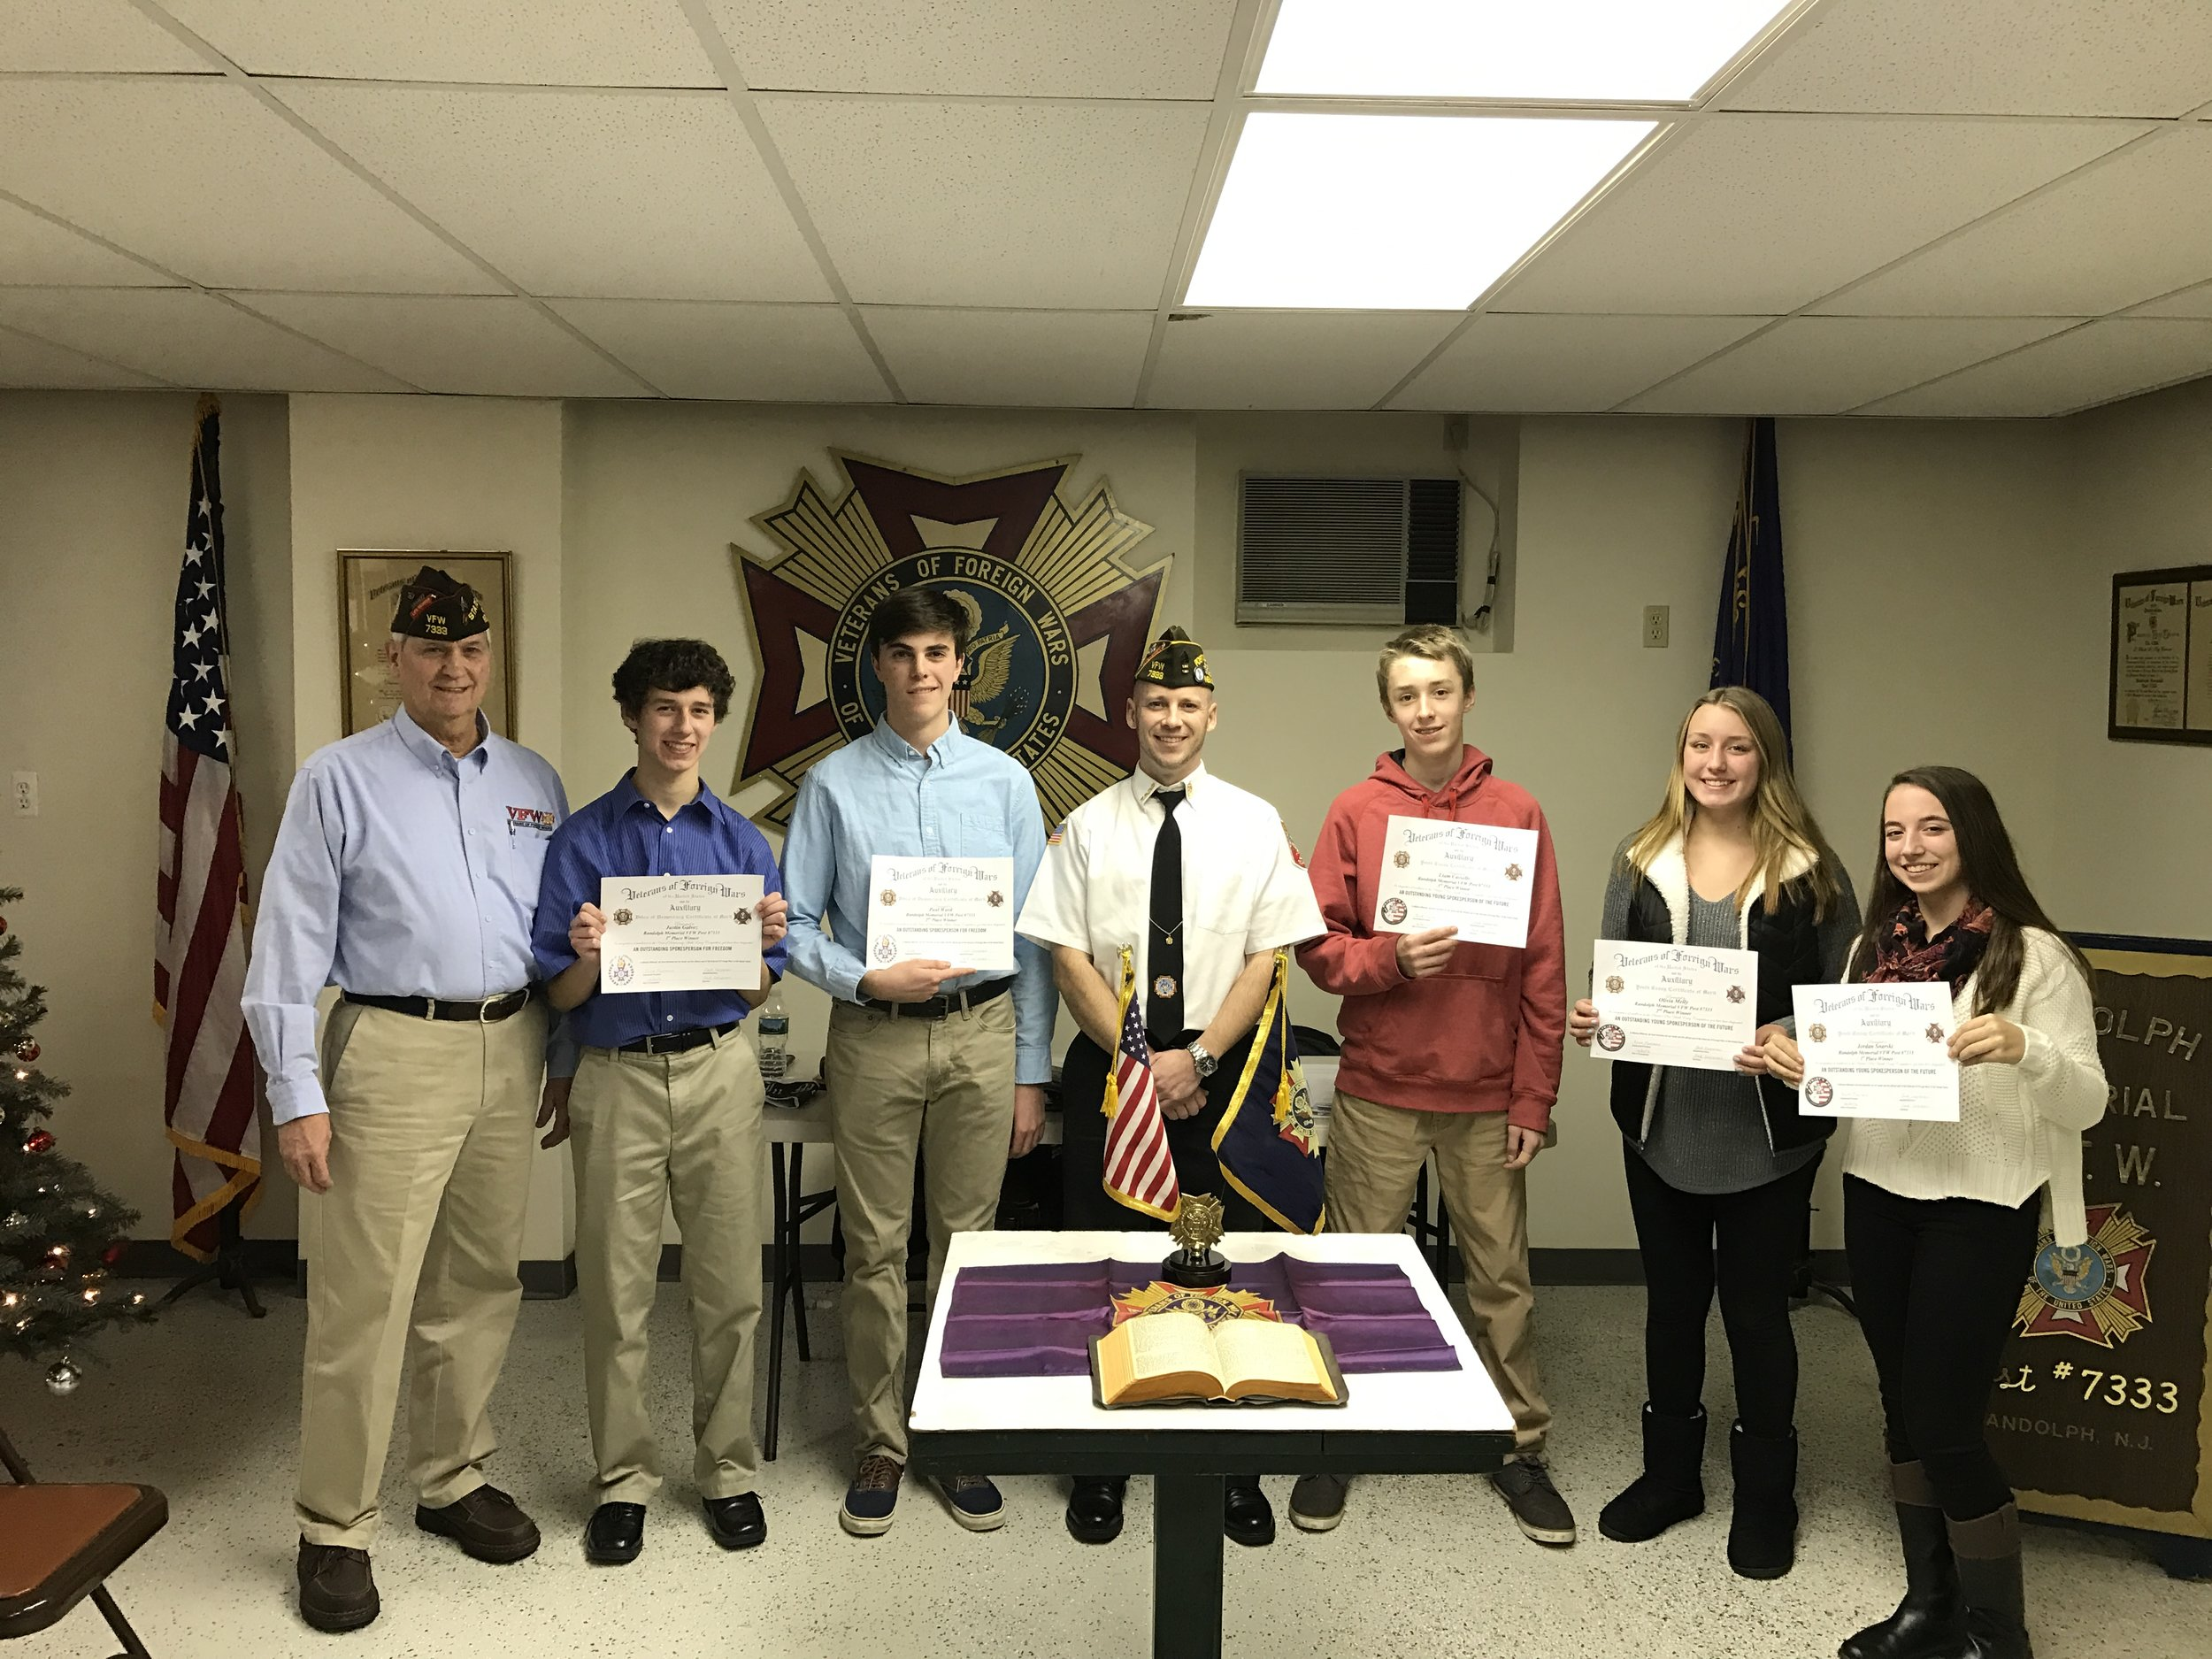 "On December 20 , 2016 Randolph Memorial VFW Post #7333 presented awards to the local finalists in the VFW Patriot's Pen and Voice of Democracy essay contests. The Patriot's Pen contest is open to all students in the 6th thru 8th grades. This year's theme was ""The America I Believe In"". First place was awarded to Jordan Snarski, 2nd place to Olivia Melly and 3rd to Liam Cassells. The Voice of Democracy contest is for high school students.This year's theme was ""My Responsibility To America"".The contest winner on the National level receives a scholarship of $30,000. First place for the Randolph area was awarded to Justin Galvez and Paul Ward received the 2nd place award. (pictured L-R: Program Chairman Jack Sassaman, Justin Galvez, Paul Ward, Post Commander Montanio, Liam Cassells, Olivia Melly, Jordan Snarski)."